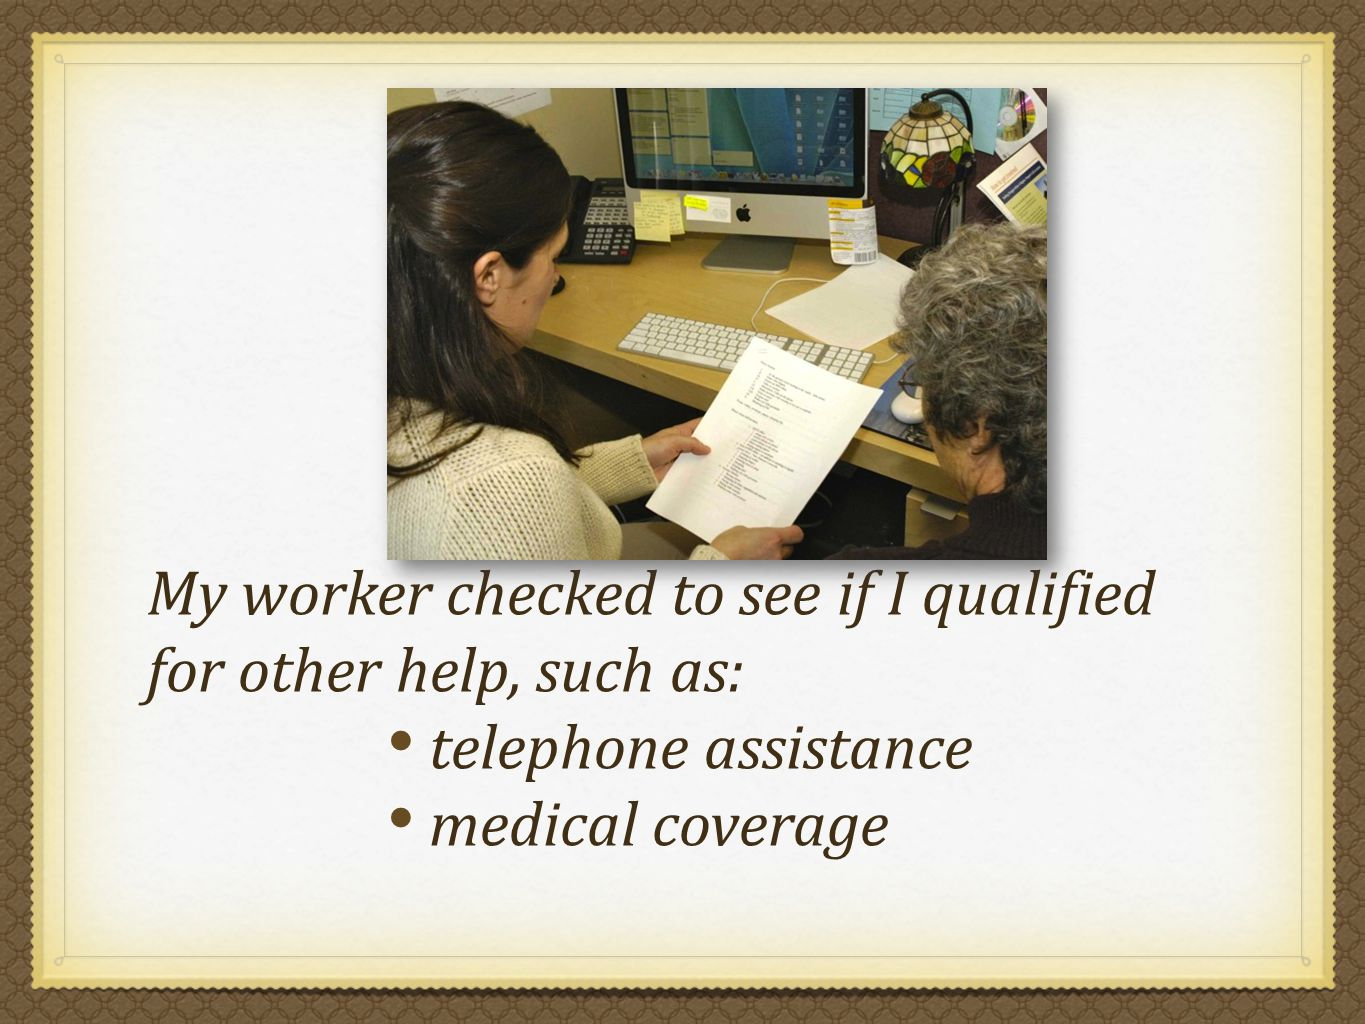 My worker checked to see if I qualified for other help, such as: telephone assistance medical coverage